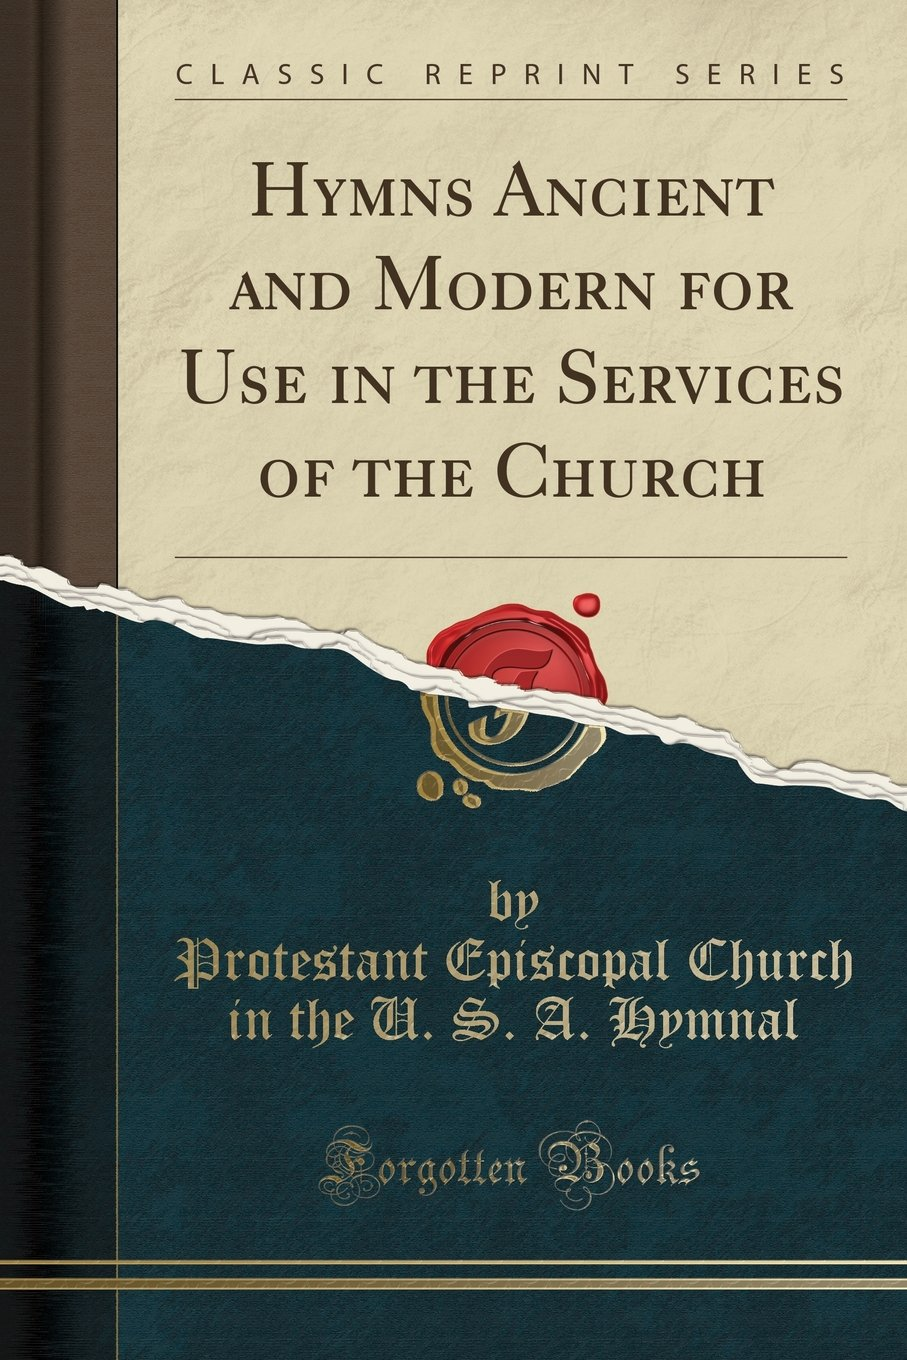 Hymns Ancient and Modern for Use in the Services of the Church (Classic  Reprint): Protestant Episcopal Church in t Hymnal: 9781330071724:  Amazon.com: Books